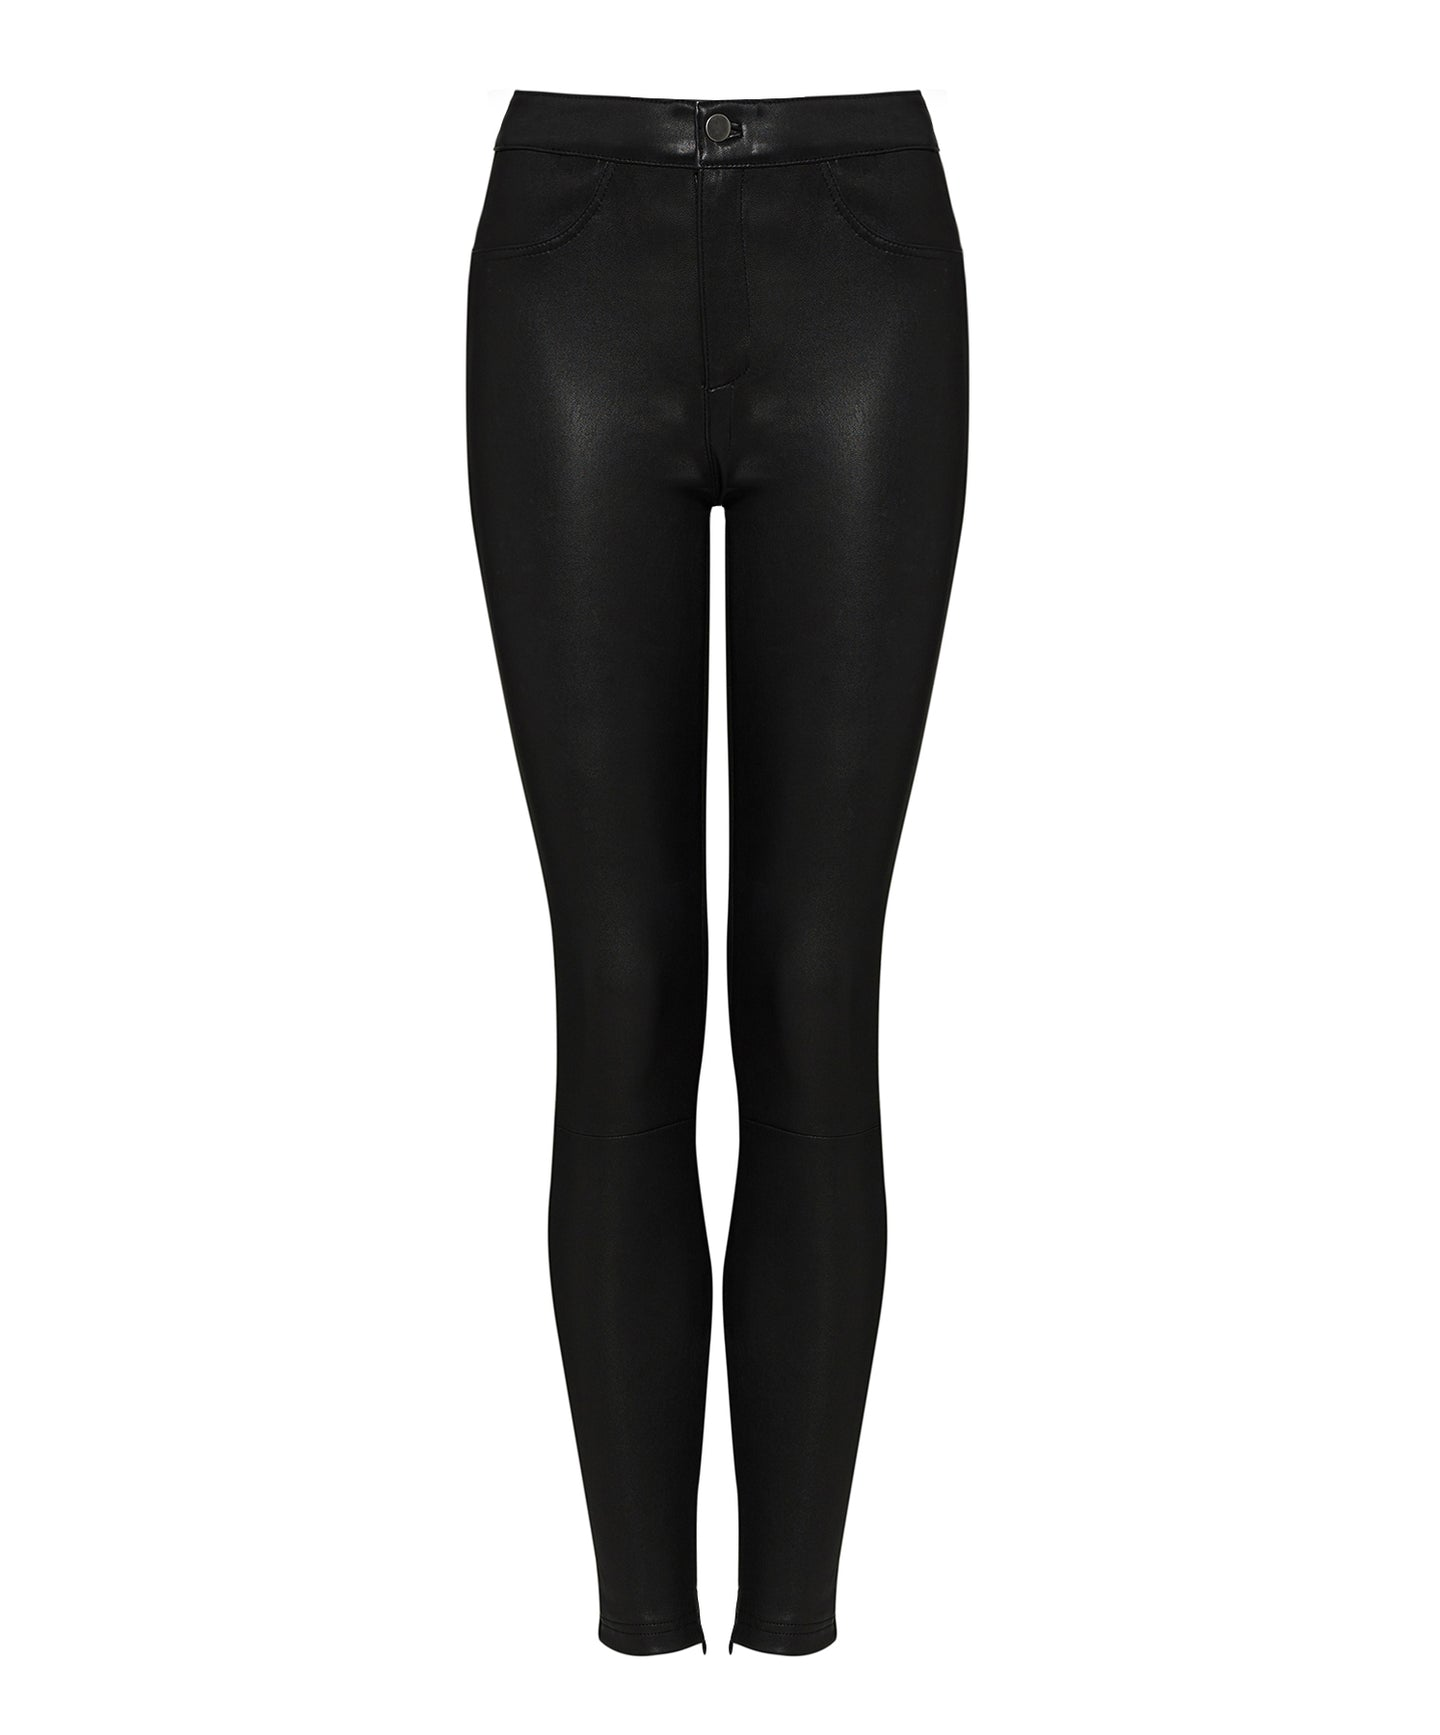 Pure Iconic Ponte Legging